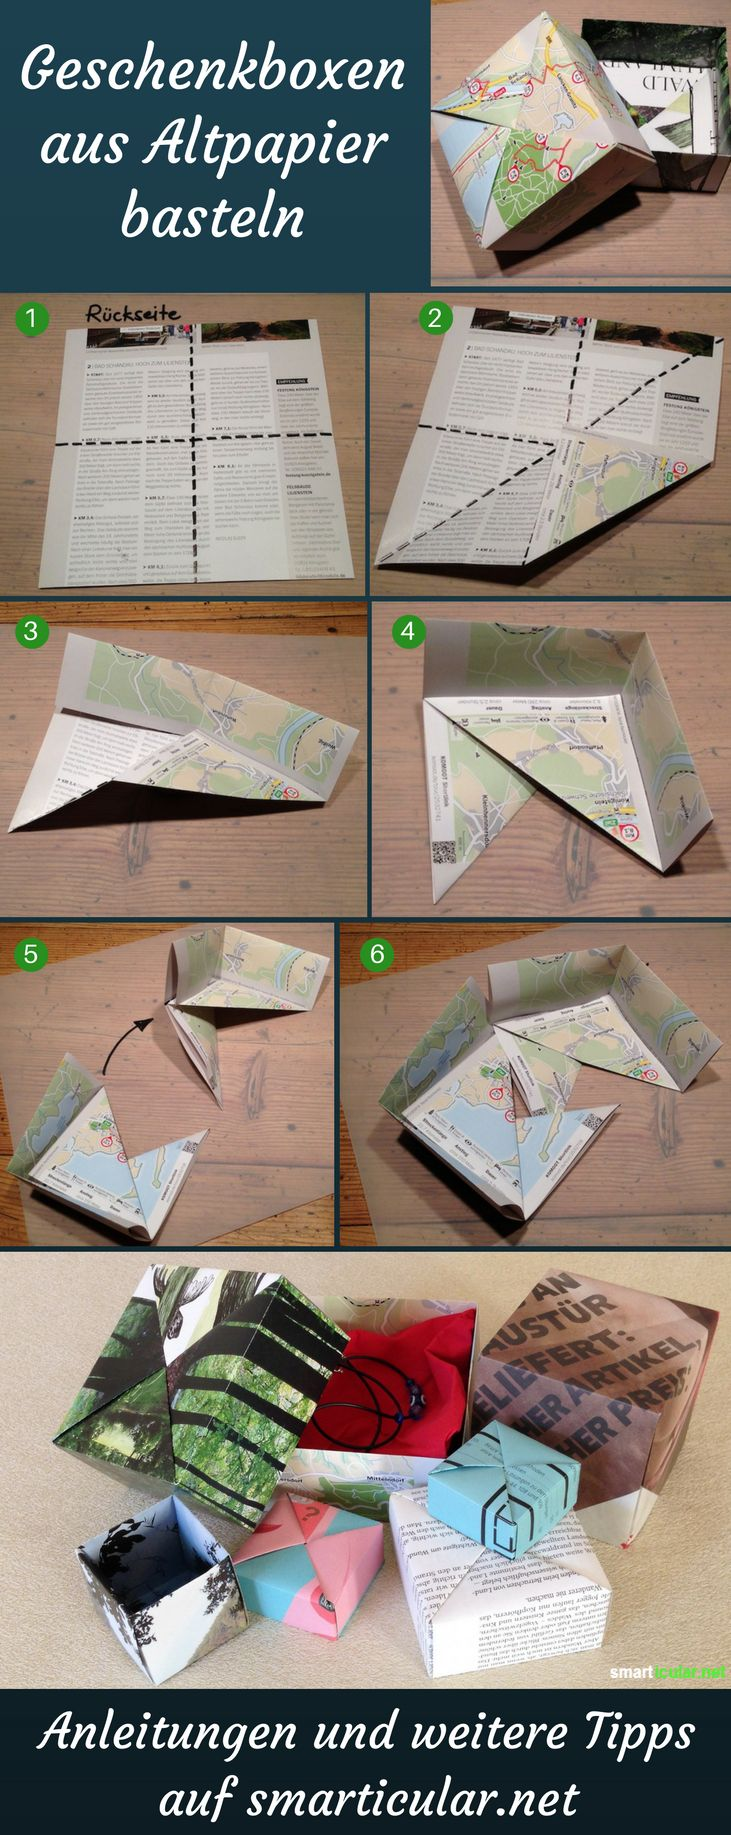 17 best origami ideas on pinterest diy box origami box tutorial and origami boxes. Black Bedroom Furniture Sets. Home Design Ideas